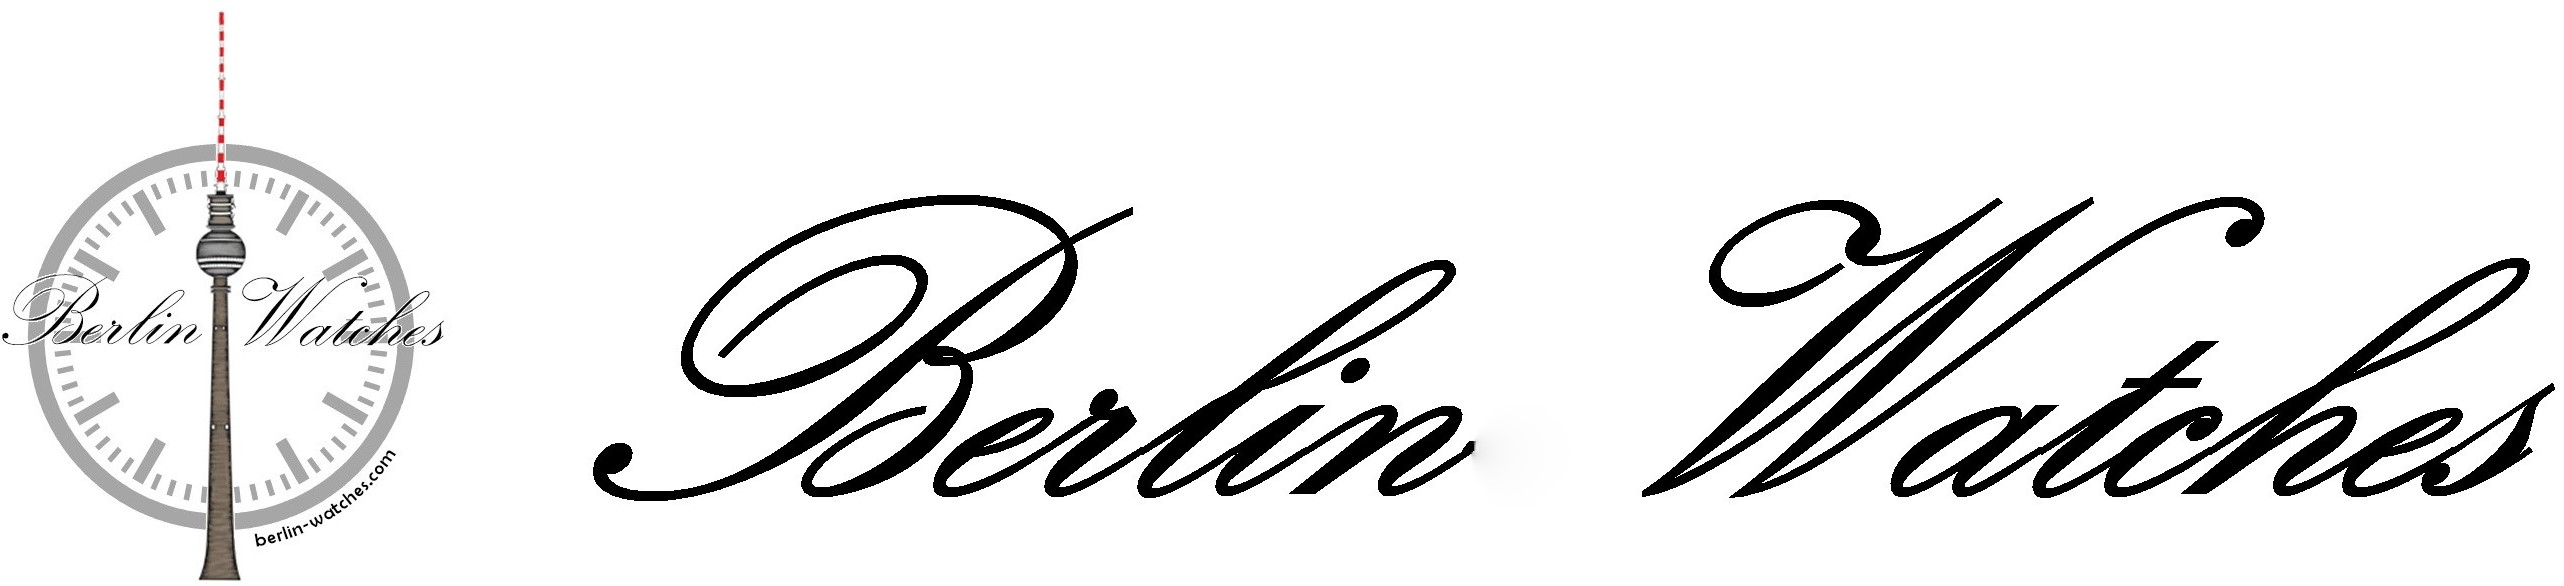 Berlin Watches-Logo